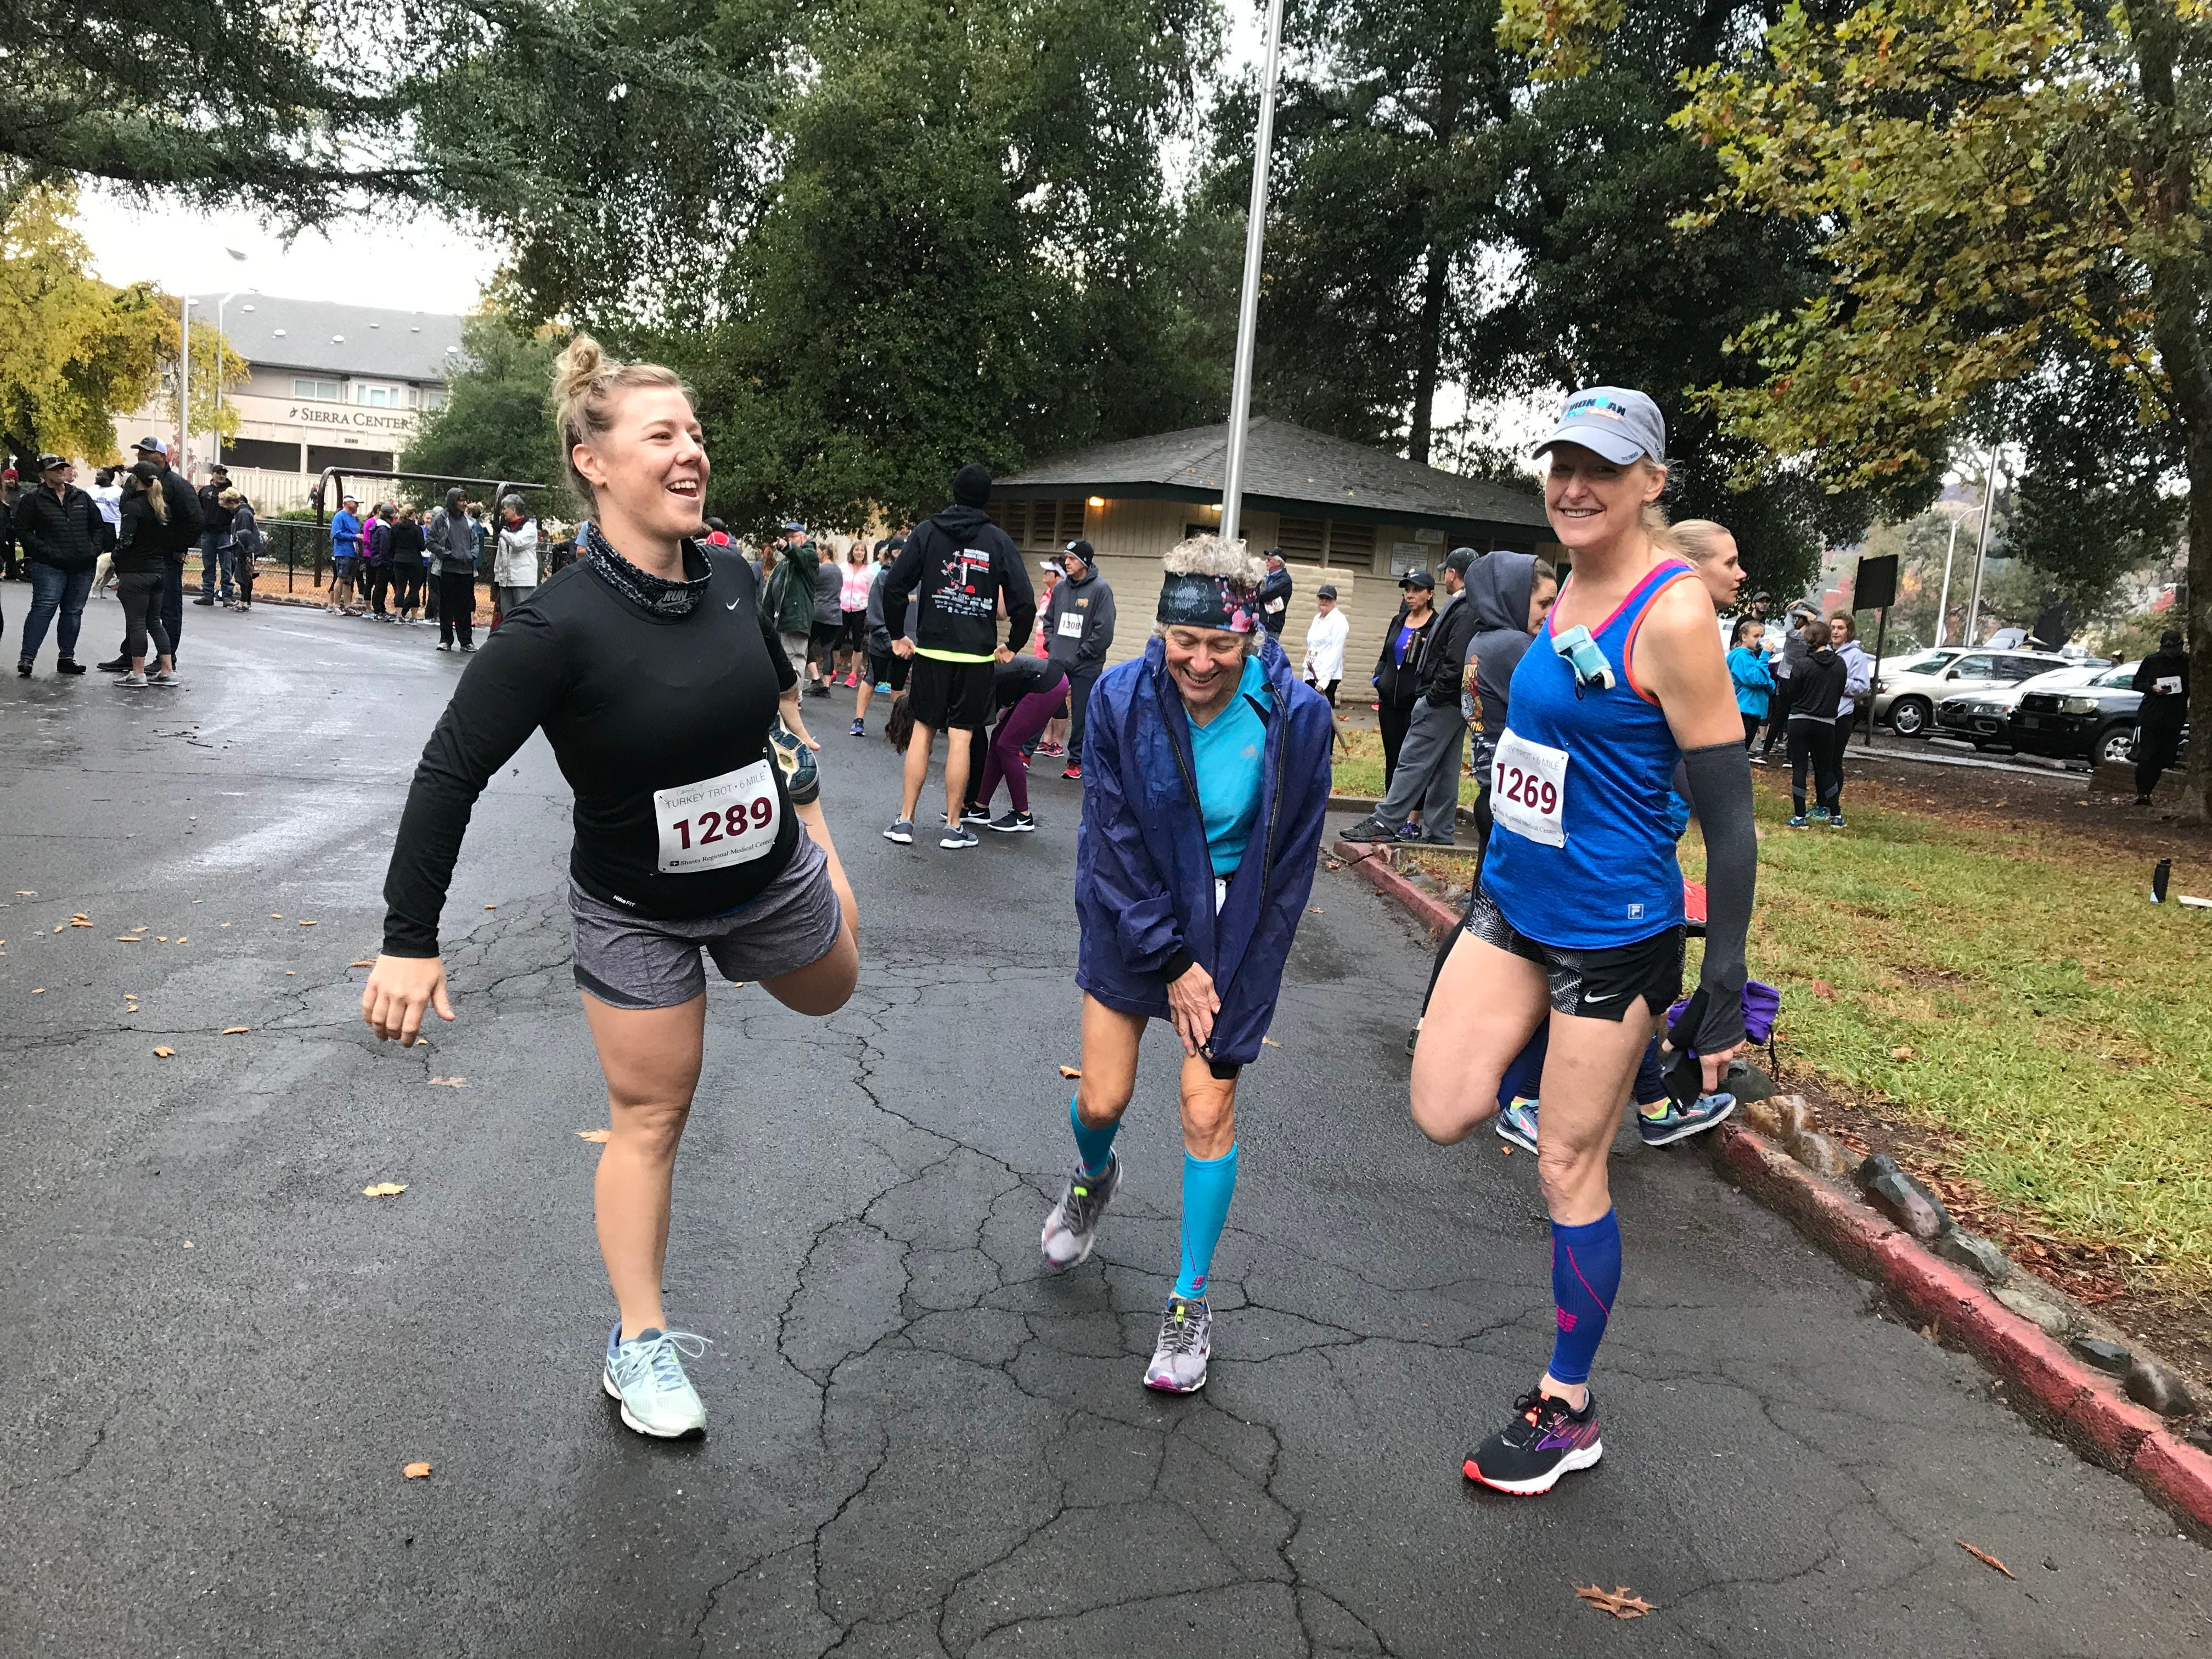 Carrie Taylor, left, warms up with Liz Friedman, center, and Lynn Holmquist before the main race.